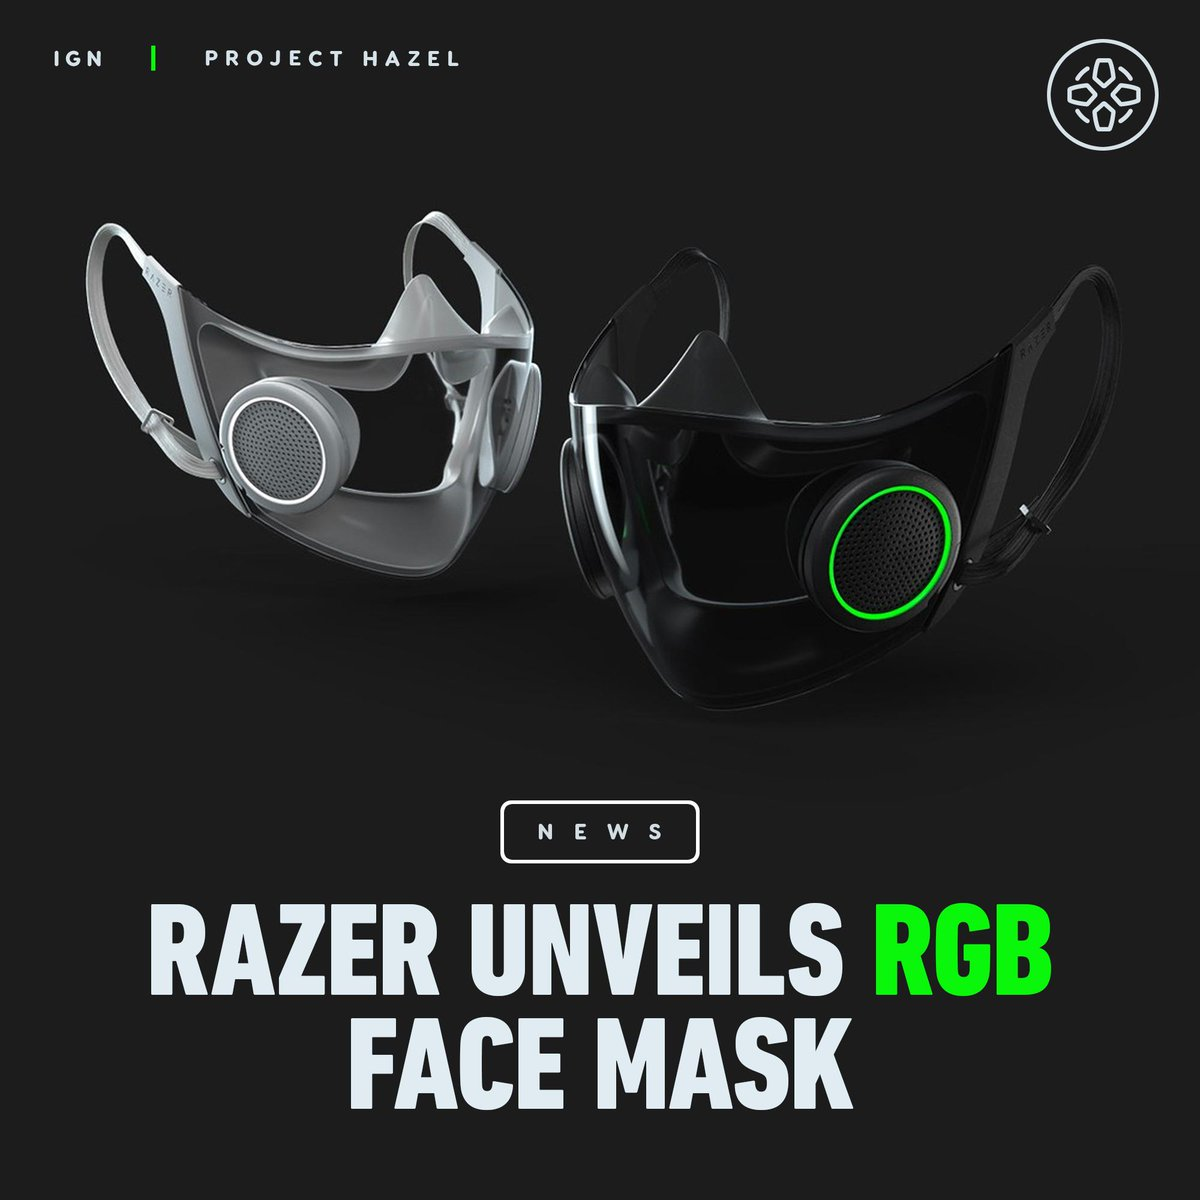 Razer revealed Project Hazel during CES 2021, a concept face mask with a N95 medical-grade respirator, transparent front panel,